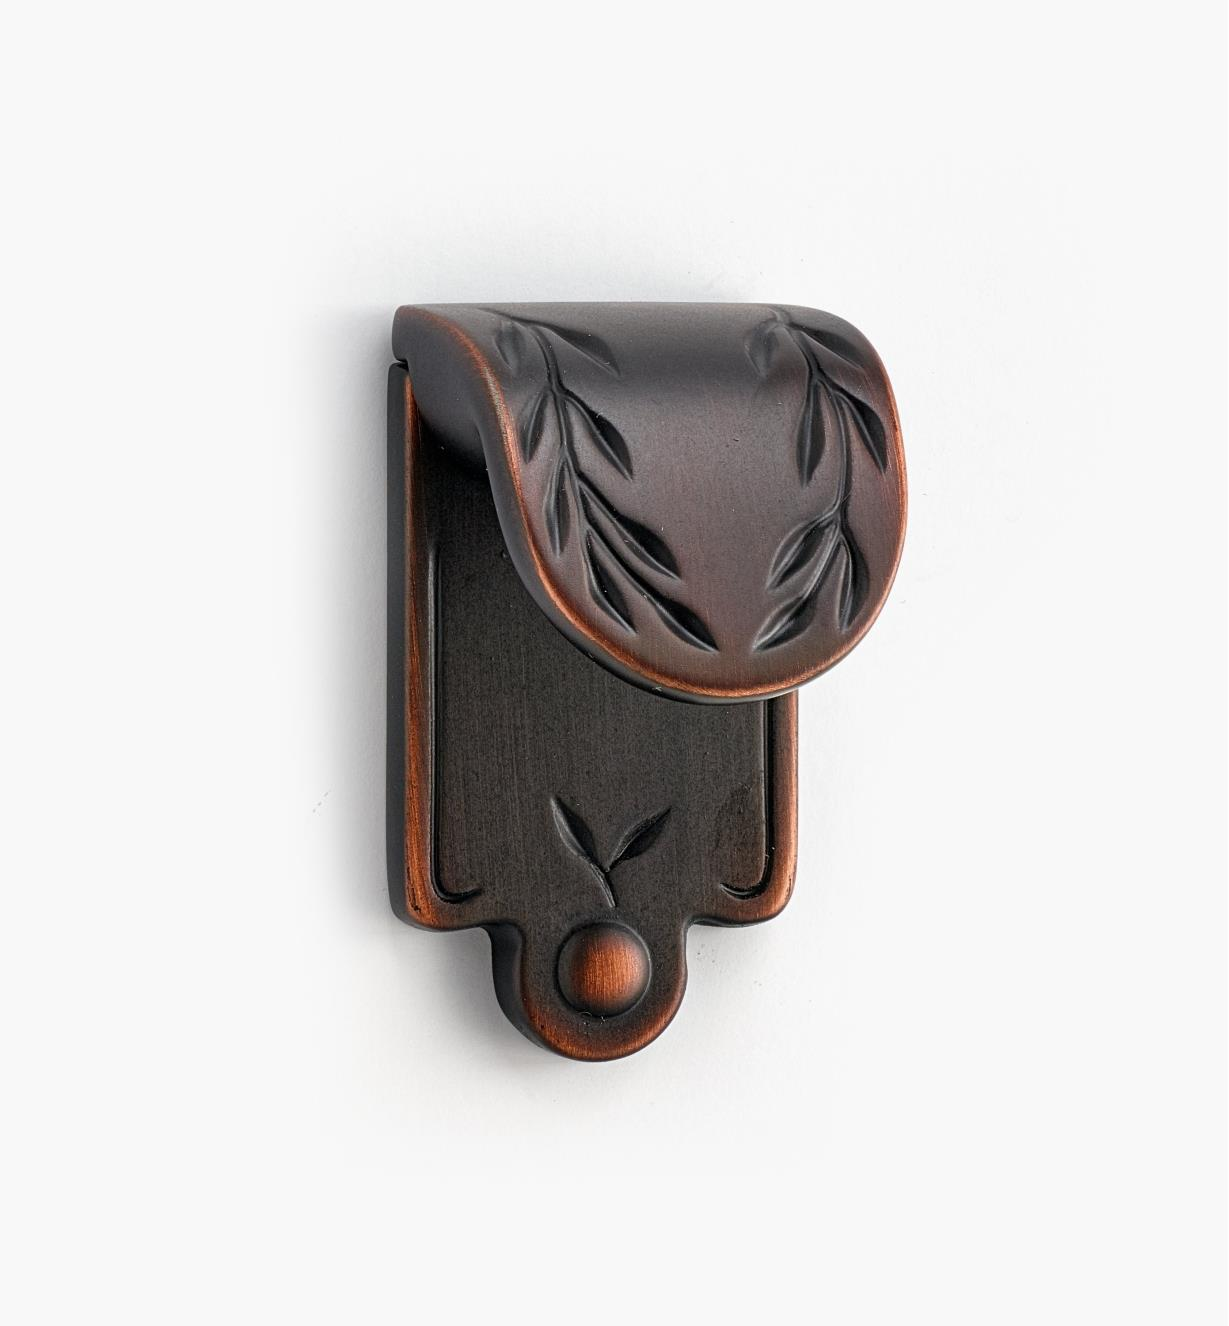 02A0533 - Leaf Finger Pull, Oil-Rubbed Bronze